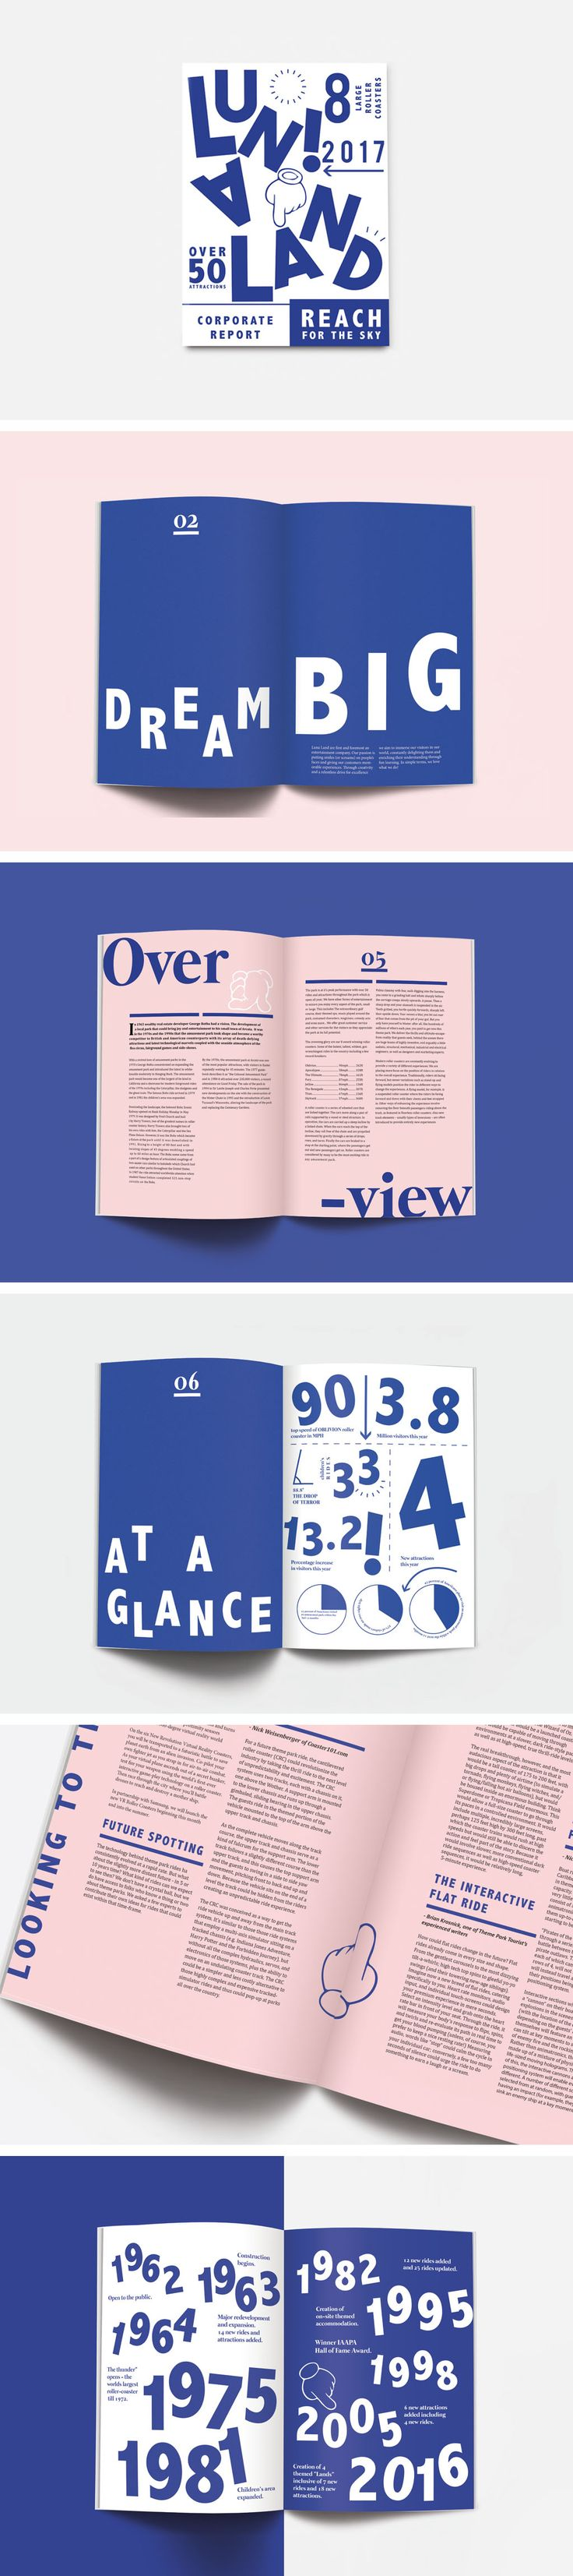 Annual Report, Print, Corporate, Layout, Editorial, Typography, Infographic by Georgia Lewis, Shillington Graduate. View more student work --> https://www.shillingtoneducation.com #MadeAtShillington #ShillingtonEducation #ShillingtonGraduate #graphicdesign #portfolio